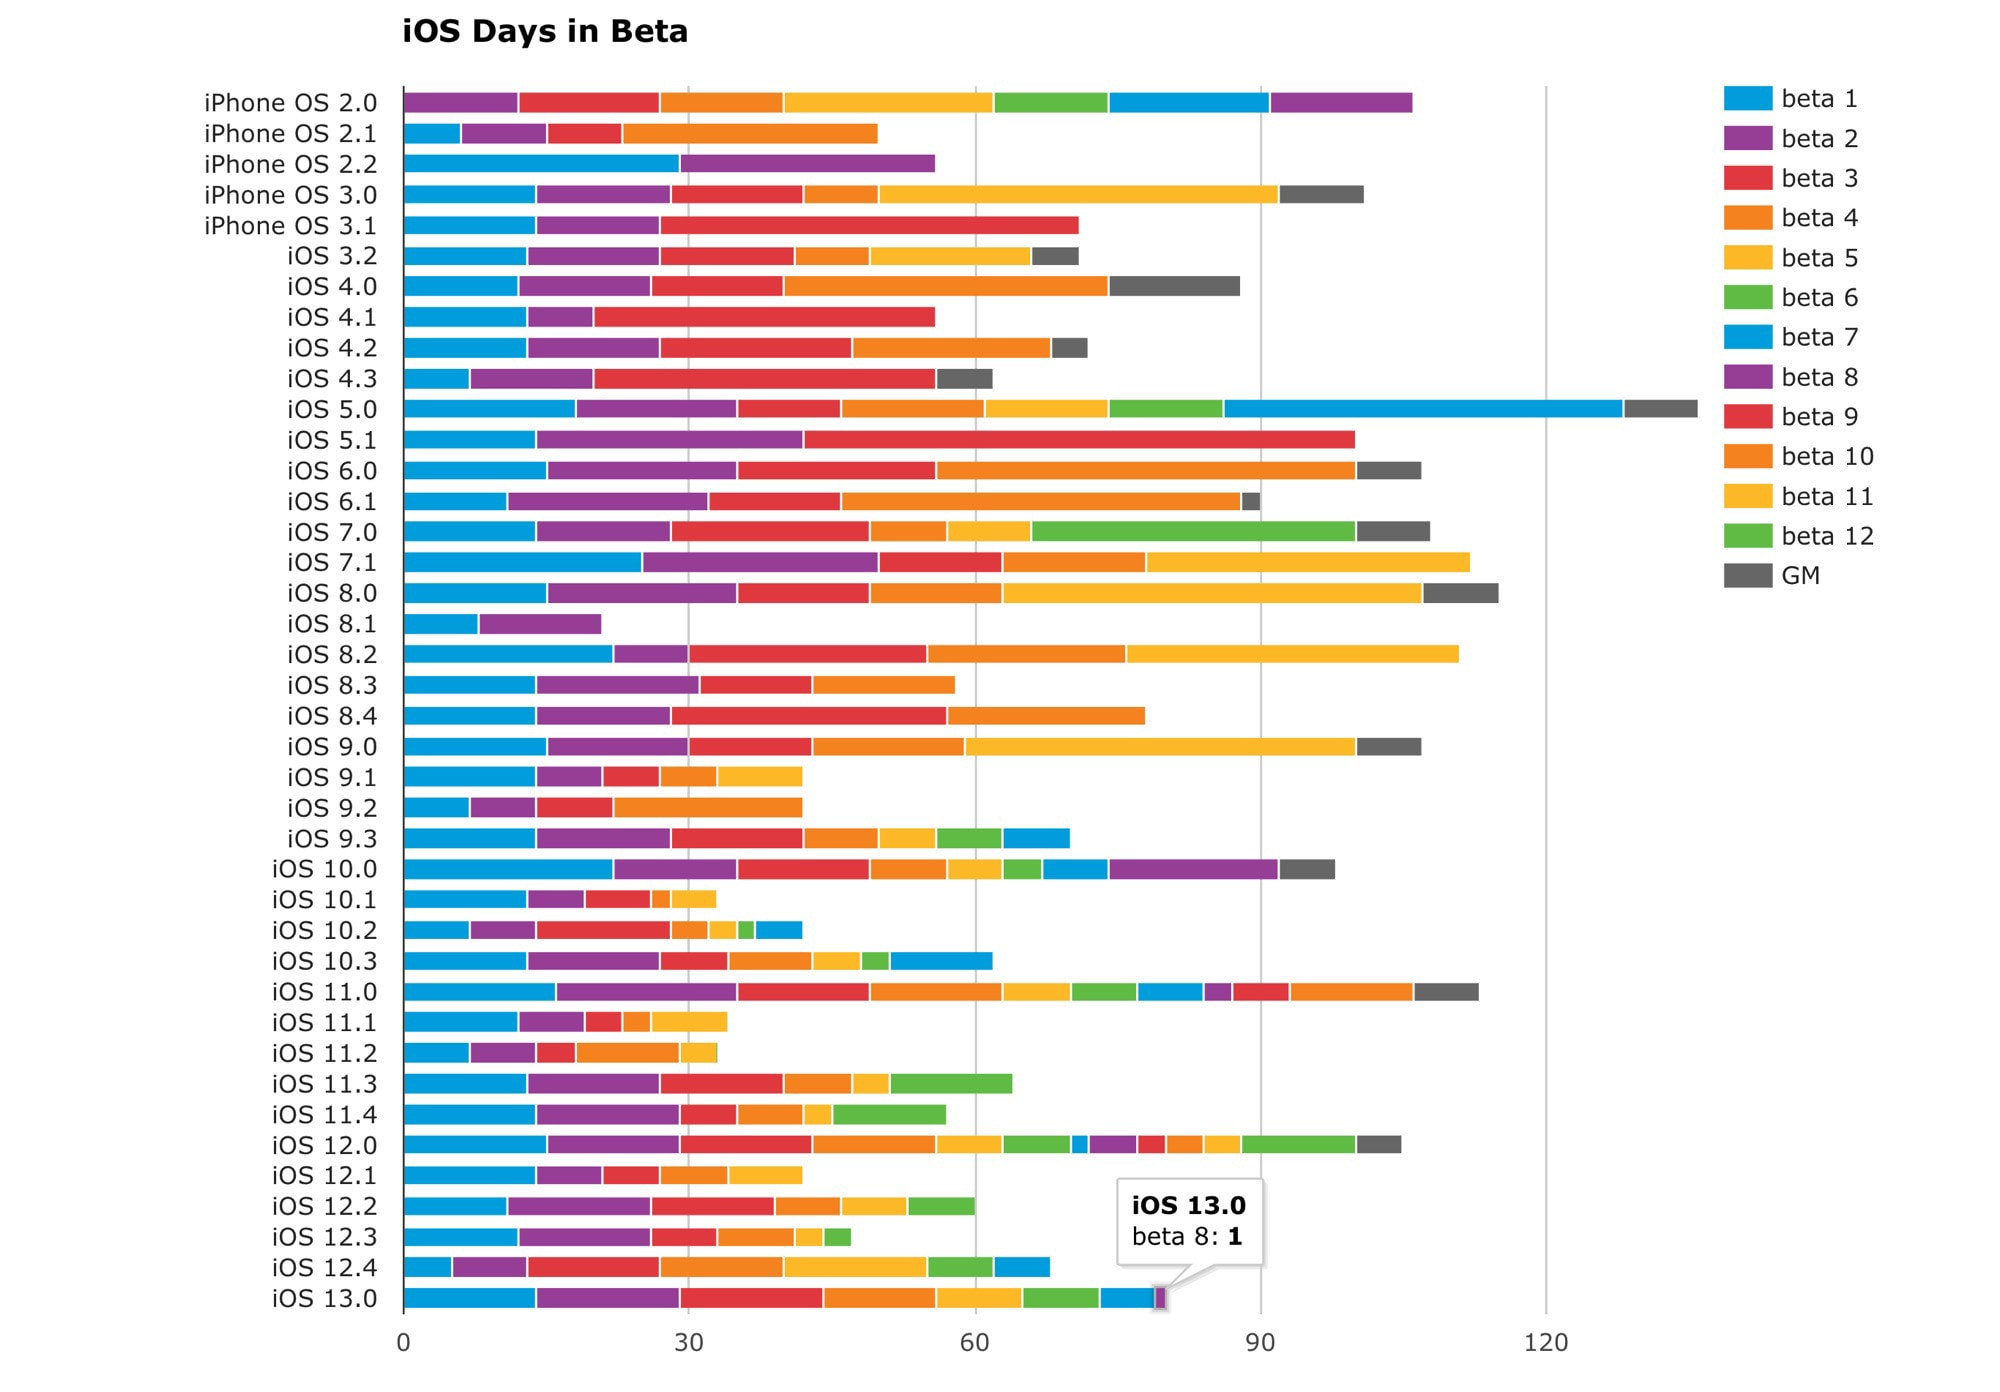 iOS Days in Beta chart: Will Hains' excellent chart breaks down the iOS betas.